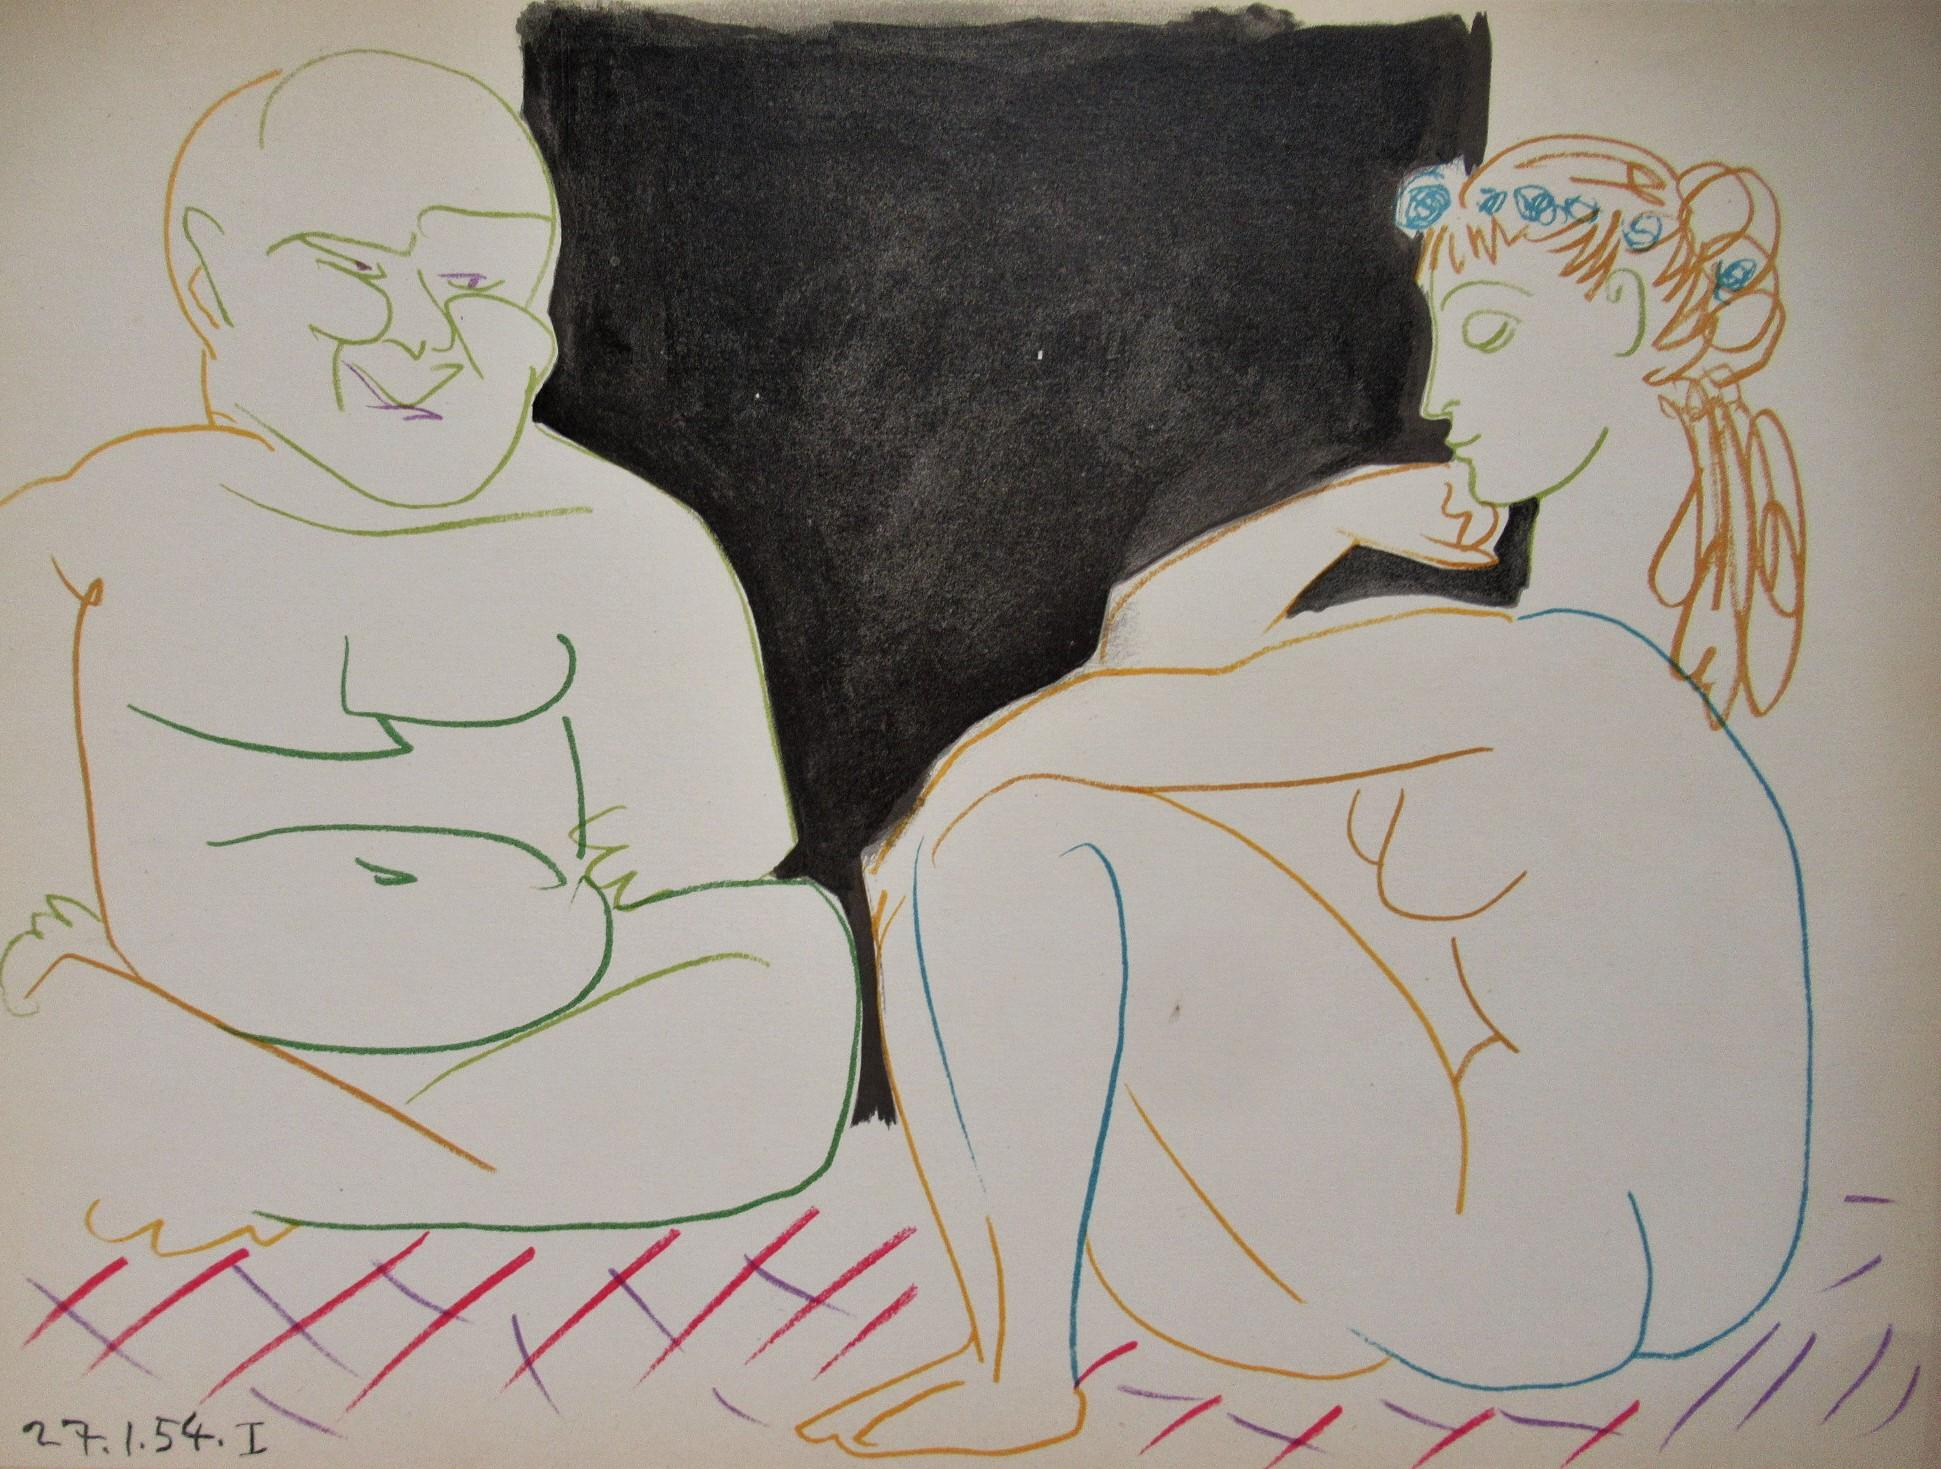 HUMAN_COMEDY__3_PICASSO_Very_Good